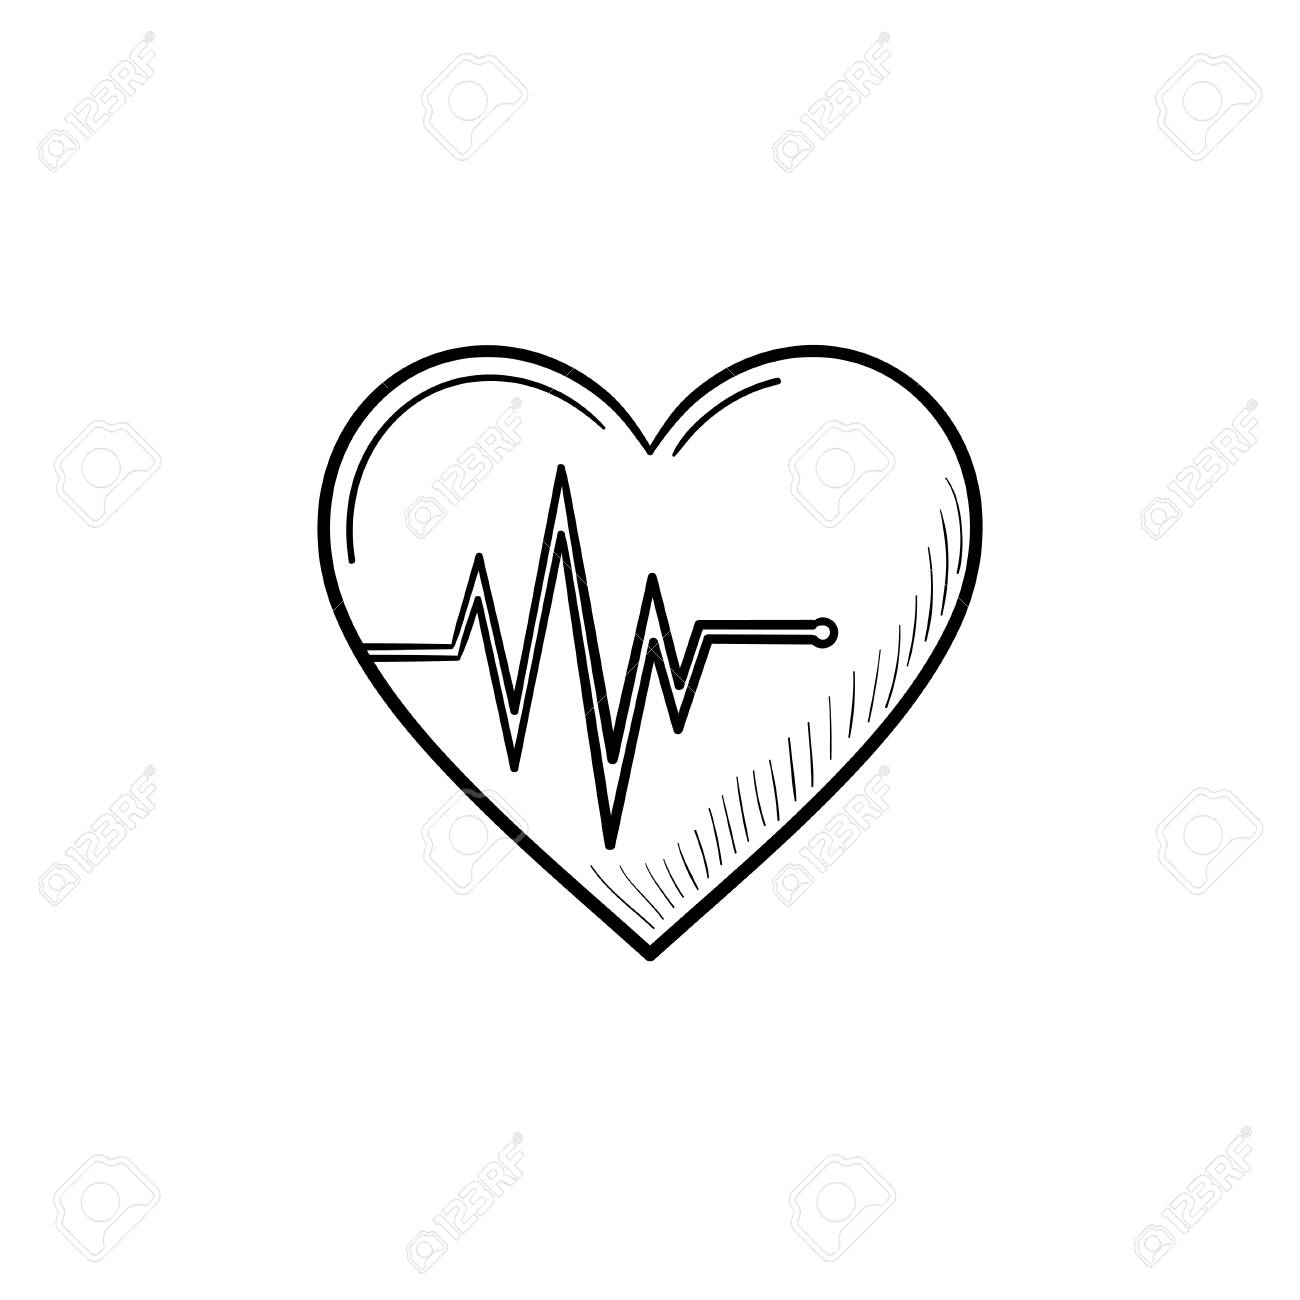 Heart Beat Rate Hand Drawn Outline Doodle Icon Pulse As Health